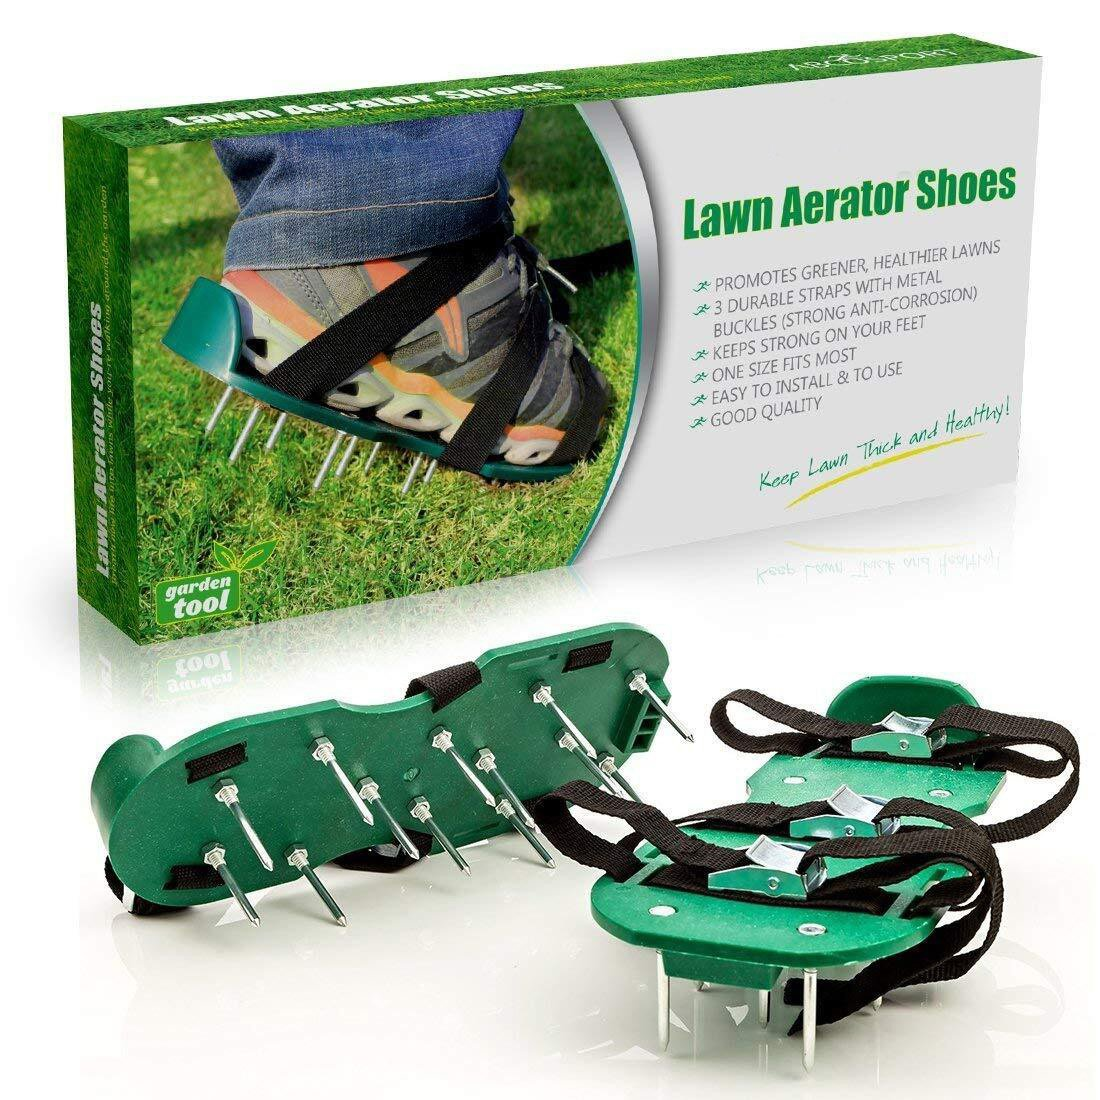 AUVSTAR Loose Soil Nail Shoes, Lawn Aerator Spike Shoes – For Effectively Aerating Lawn Soil – Comes with 3 Adjustable Straps with Metallic Buckles – Universal Size that Fits all – For a Greener and Healthier Garden or Yard.